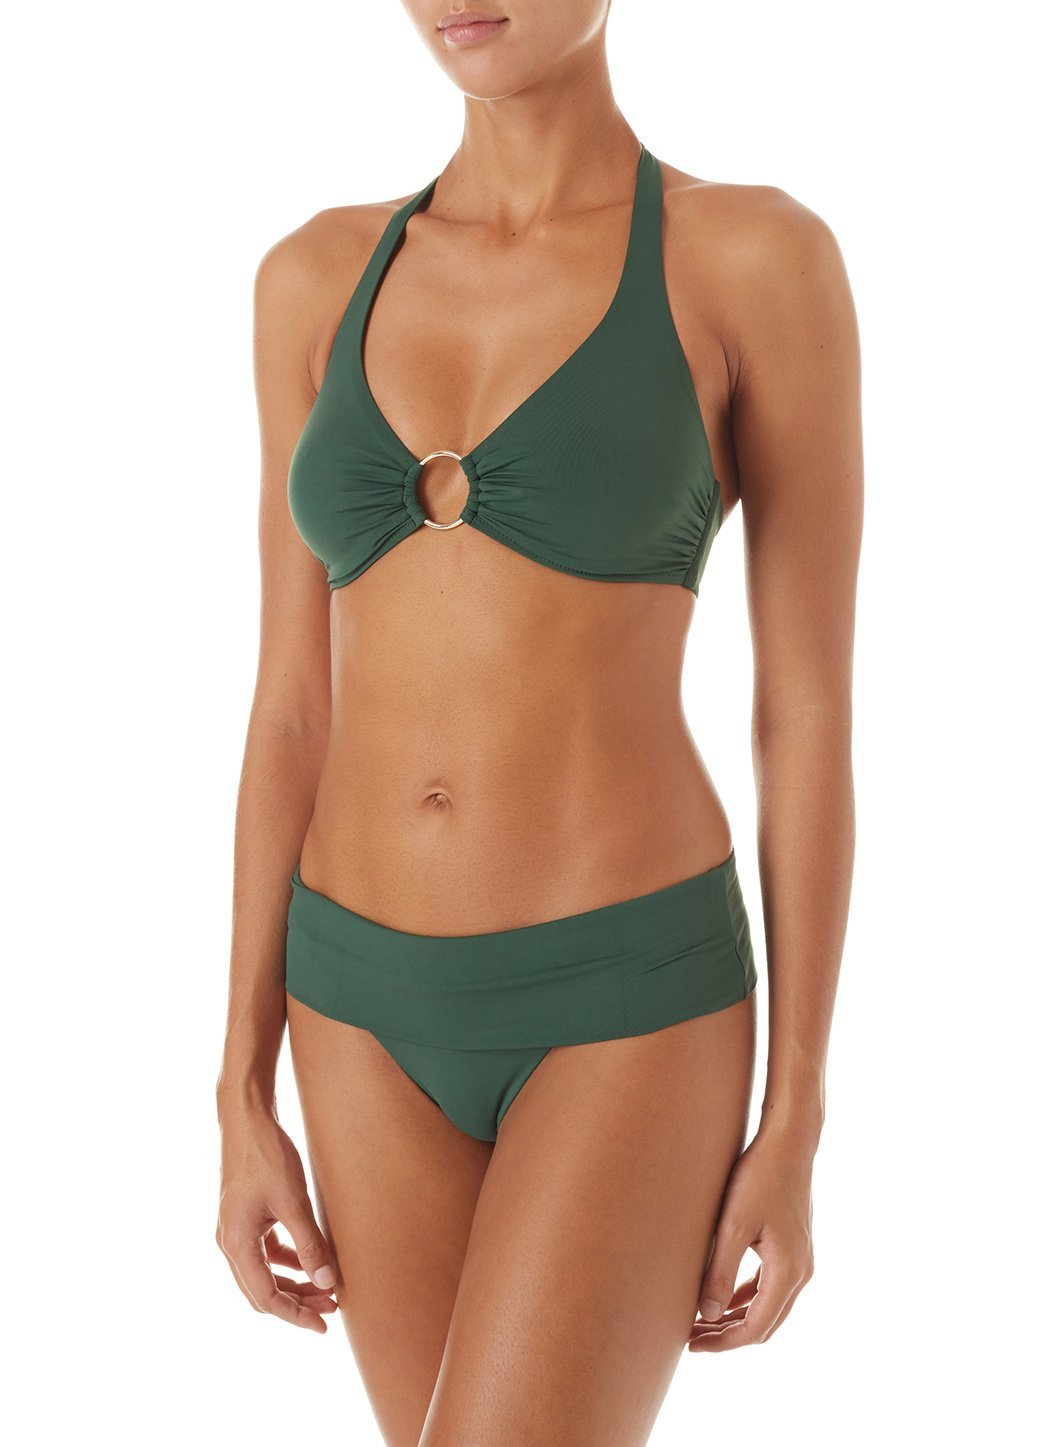 exclusive brussels forest halterneck ring supportive bikini 2019 F